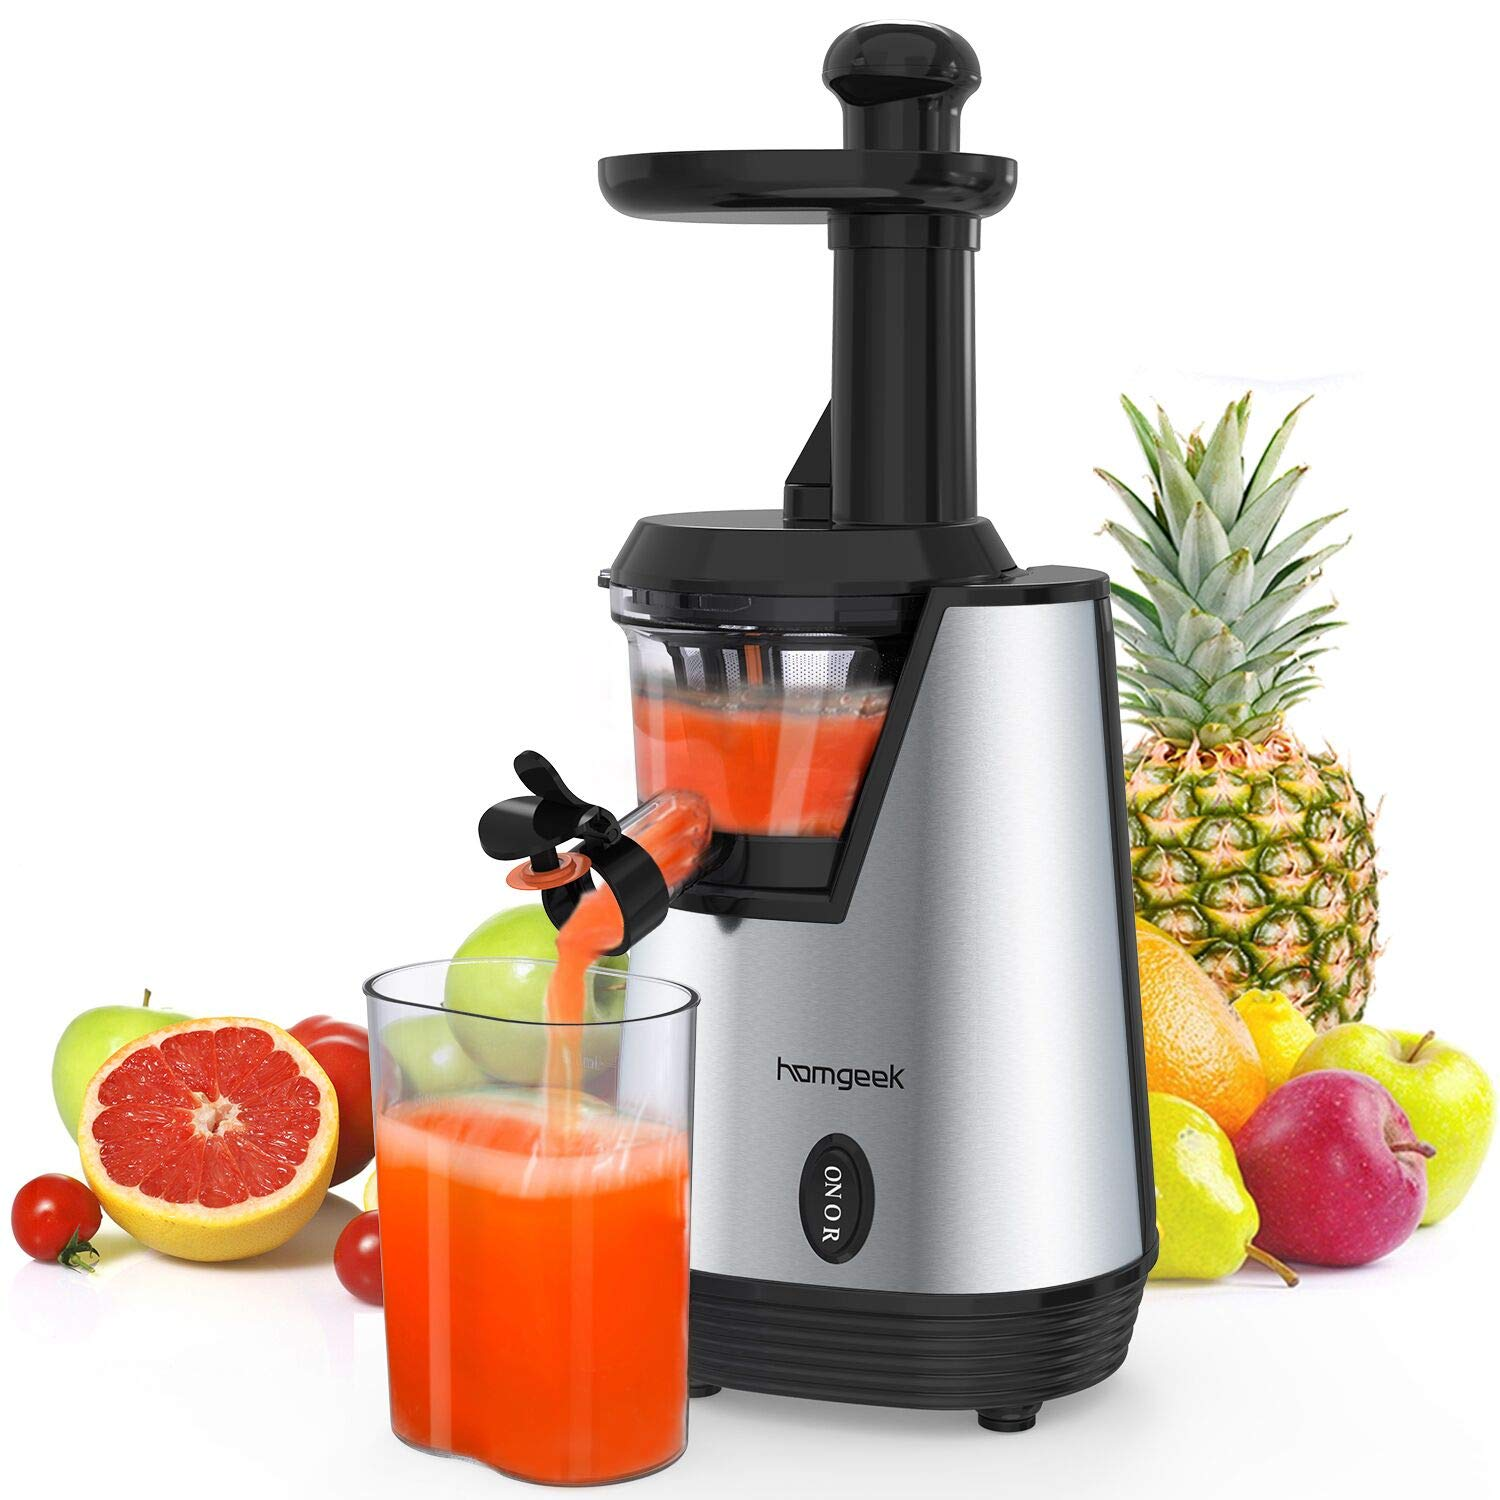 Homgeek Slow Masticating Juicer,Electric Juice Extractor with 200W Quite Motor for High Nutrient Fruit and Vegetable Juice, with 600ml Juice Cup and Brush,Silver&Black [Energy Class A+++]